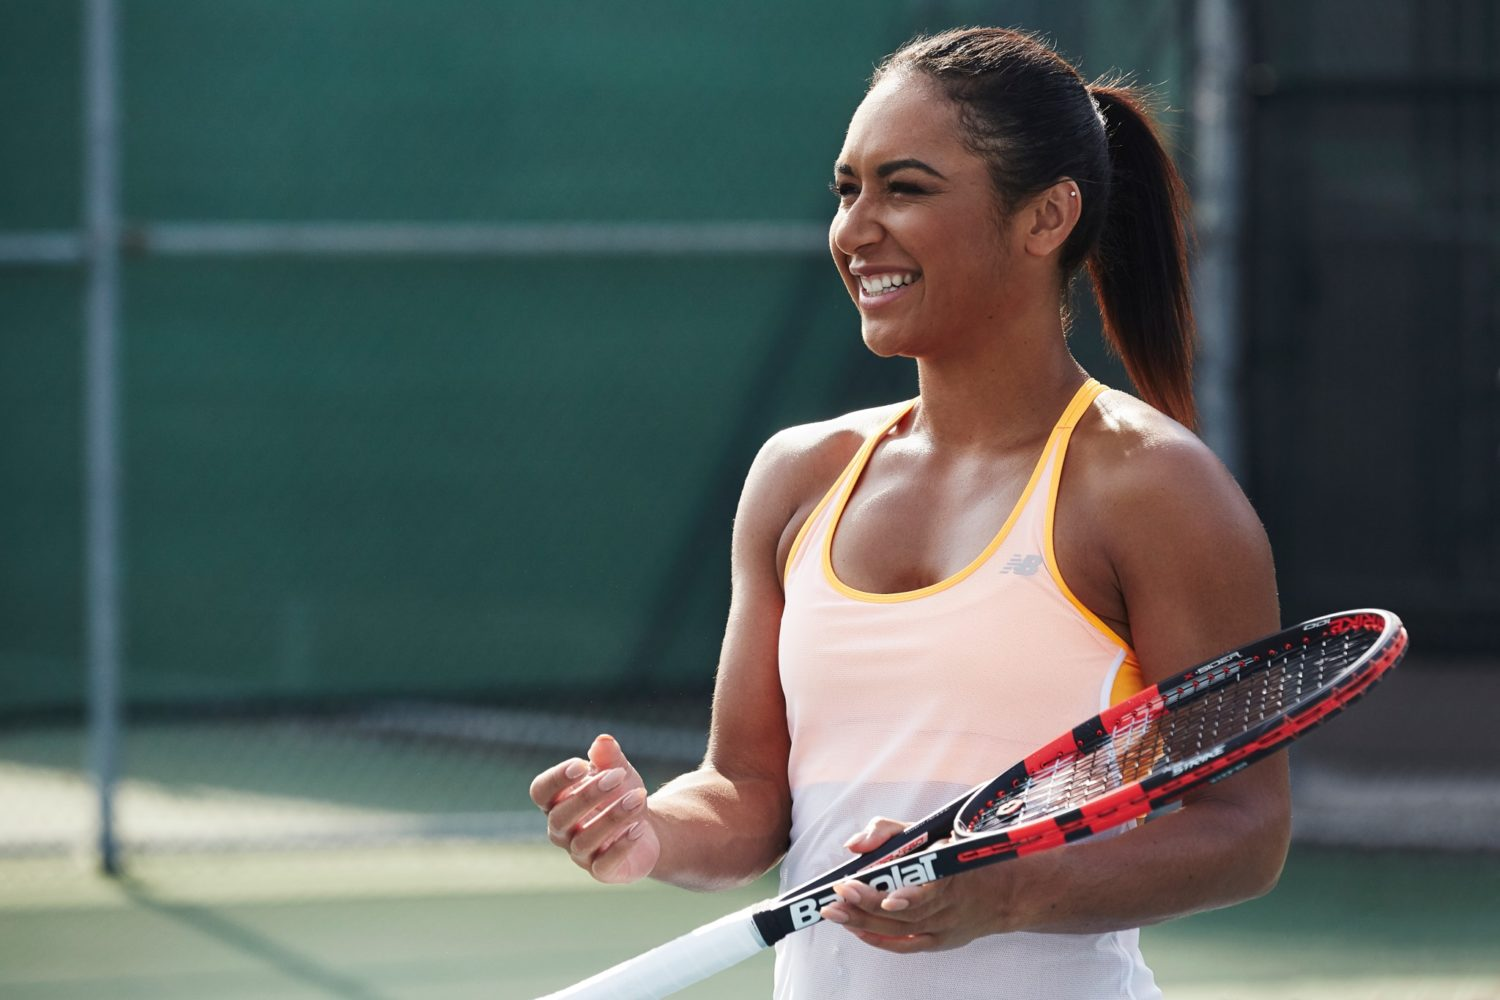 48 Hours in Miami: On Set with Pro Tennis Player Heather Watson, Part 2